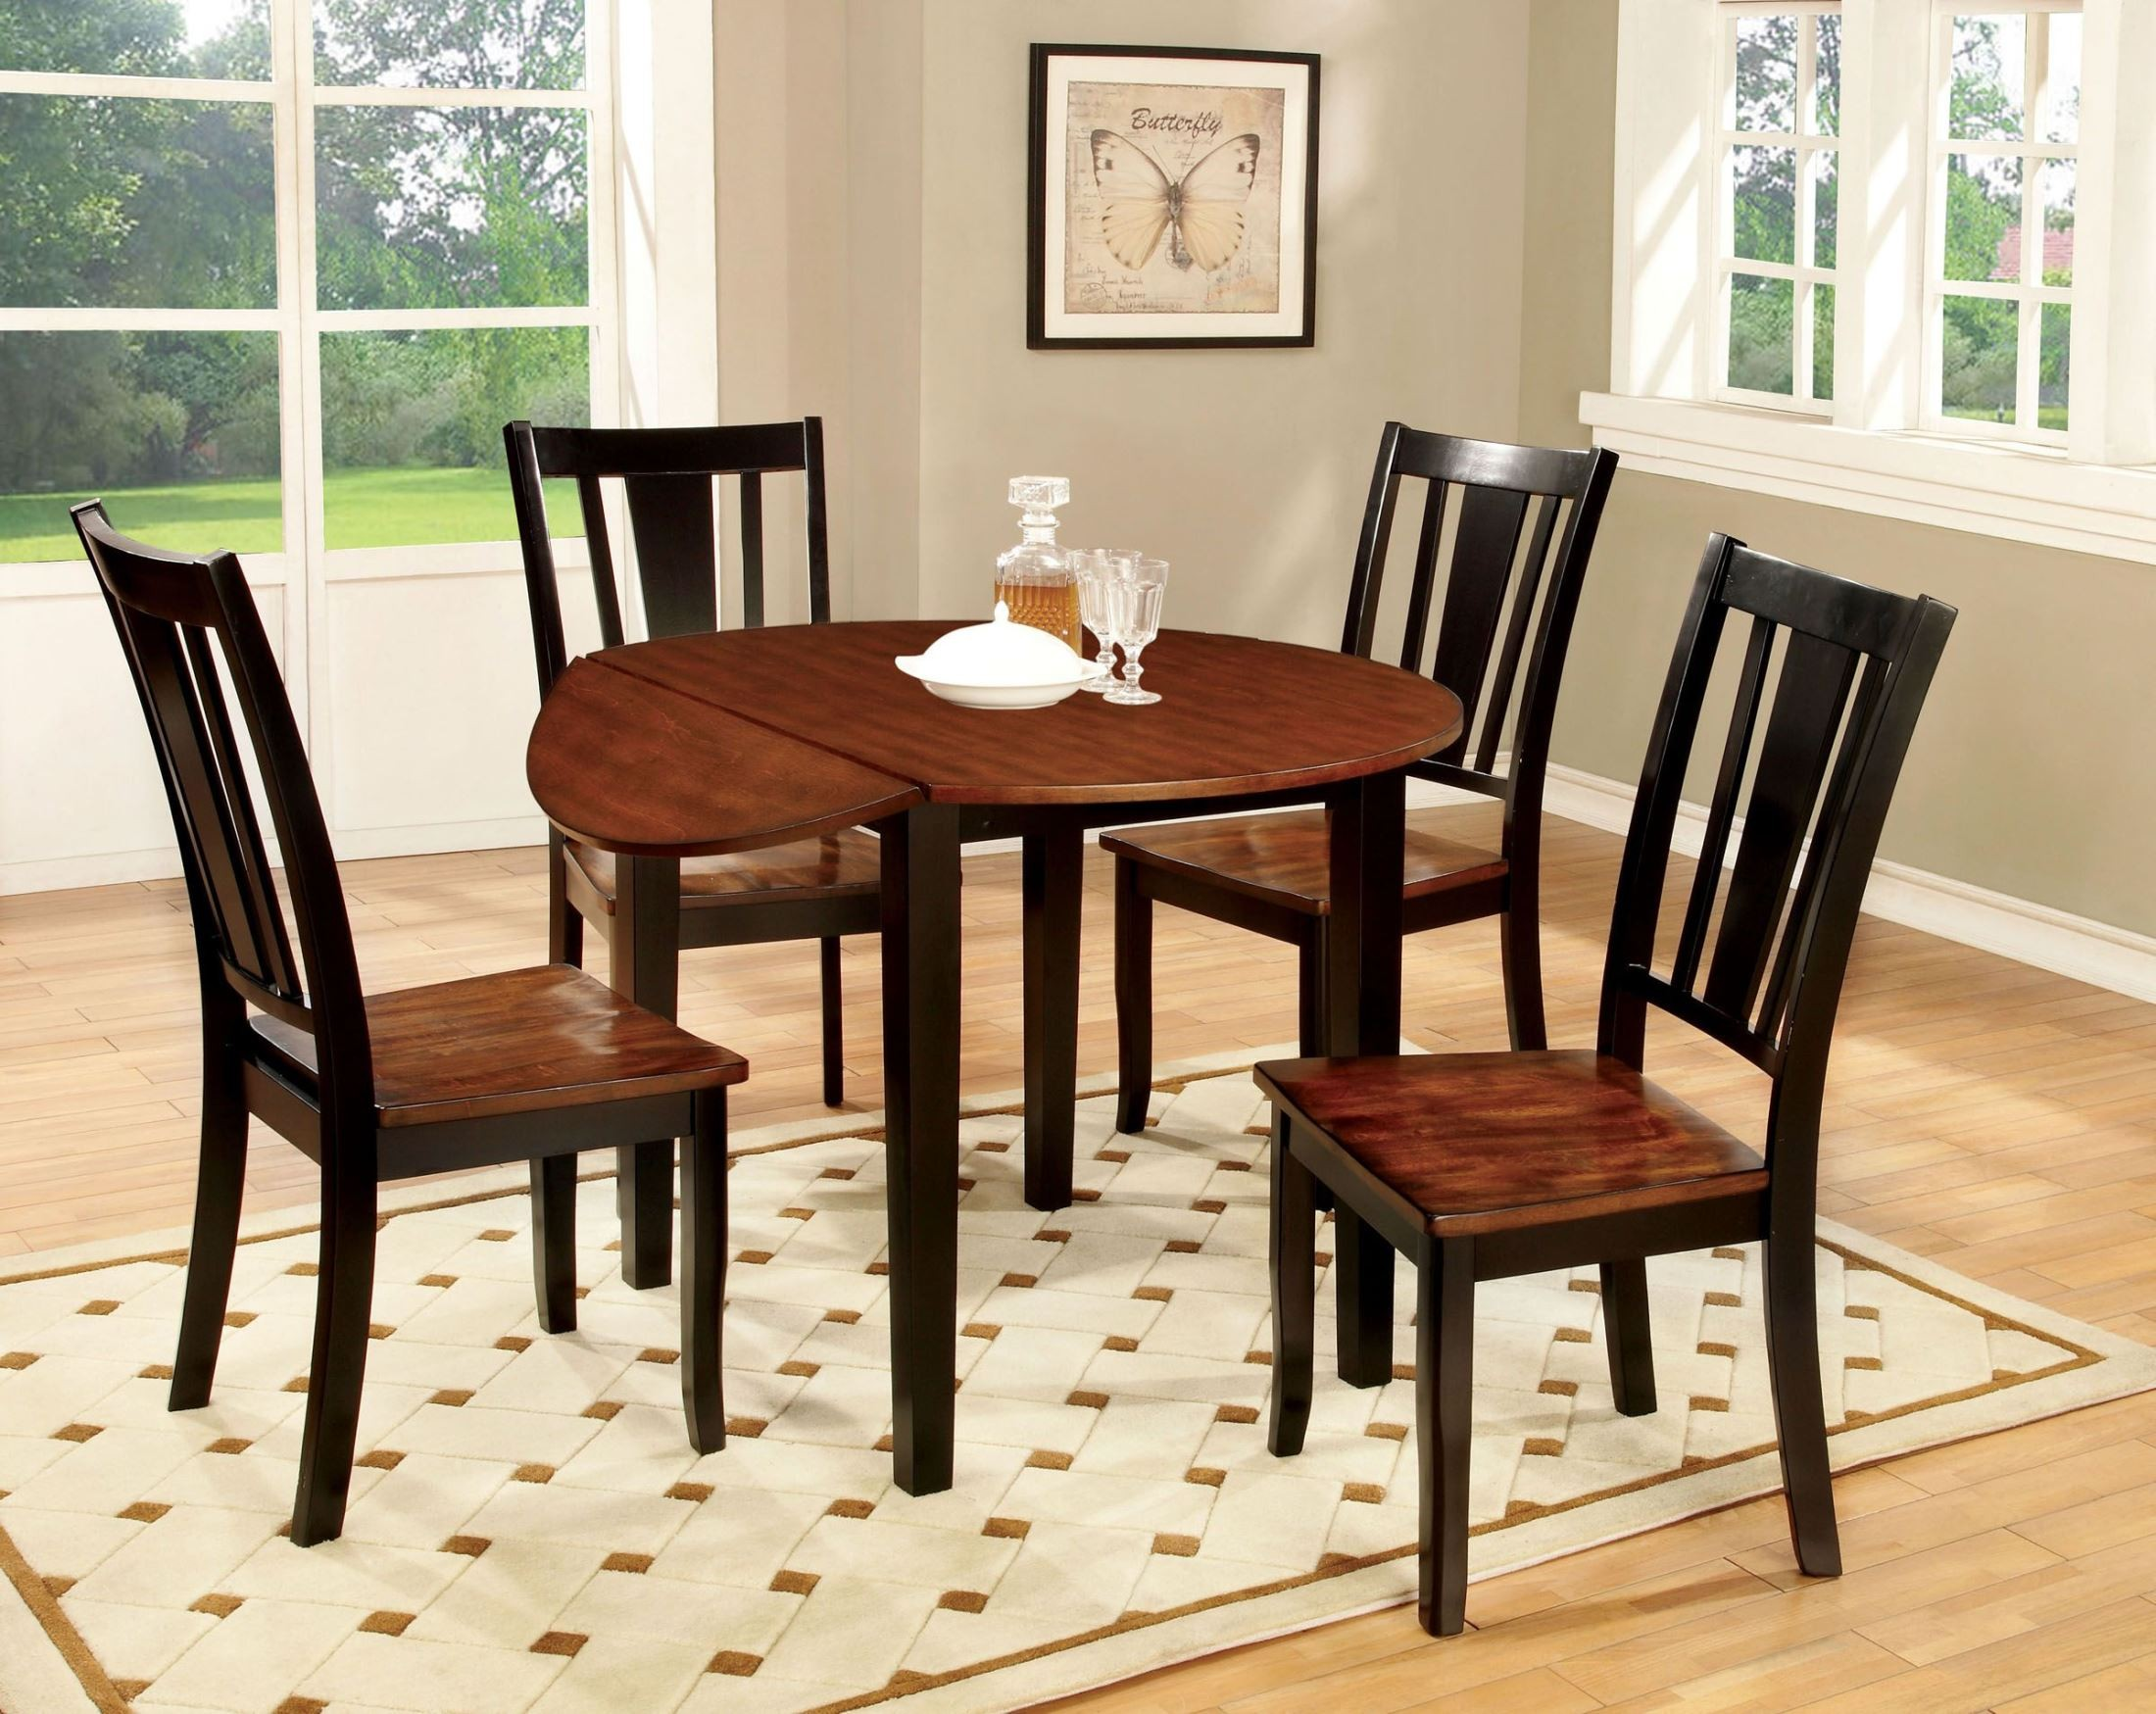 Dover ii black and cherry drop leaf round dining room set for Round dining room sets with leaf